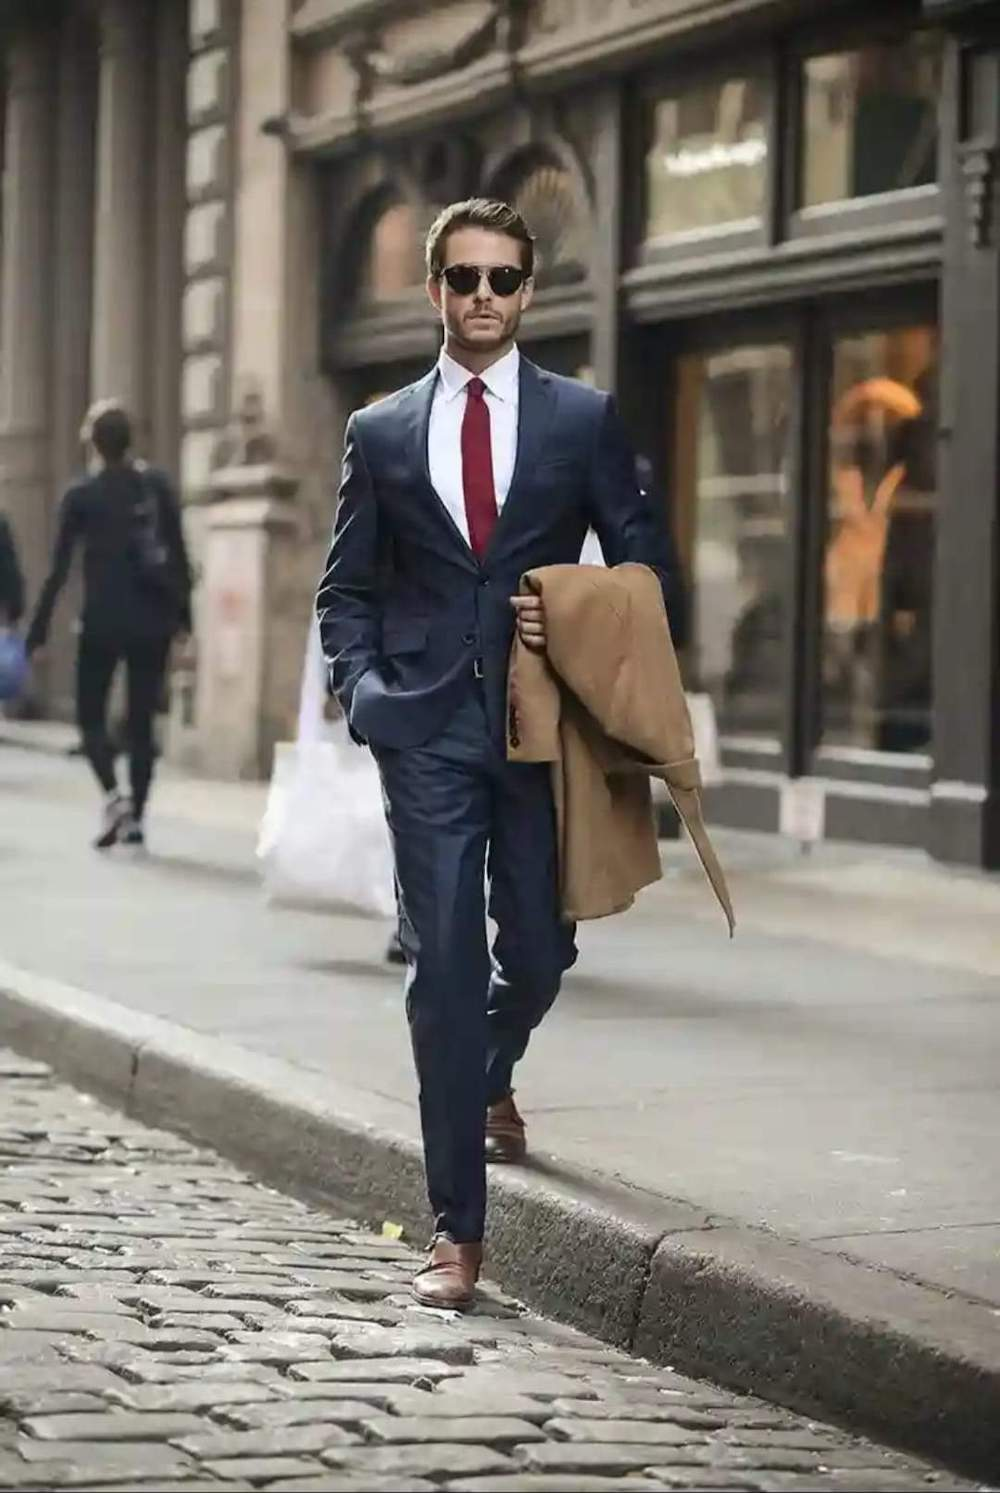 The best stylish men's outfits ideas to create an elegant and sophisticated look for any occasion